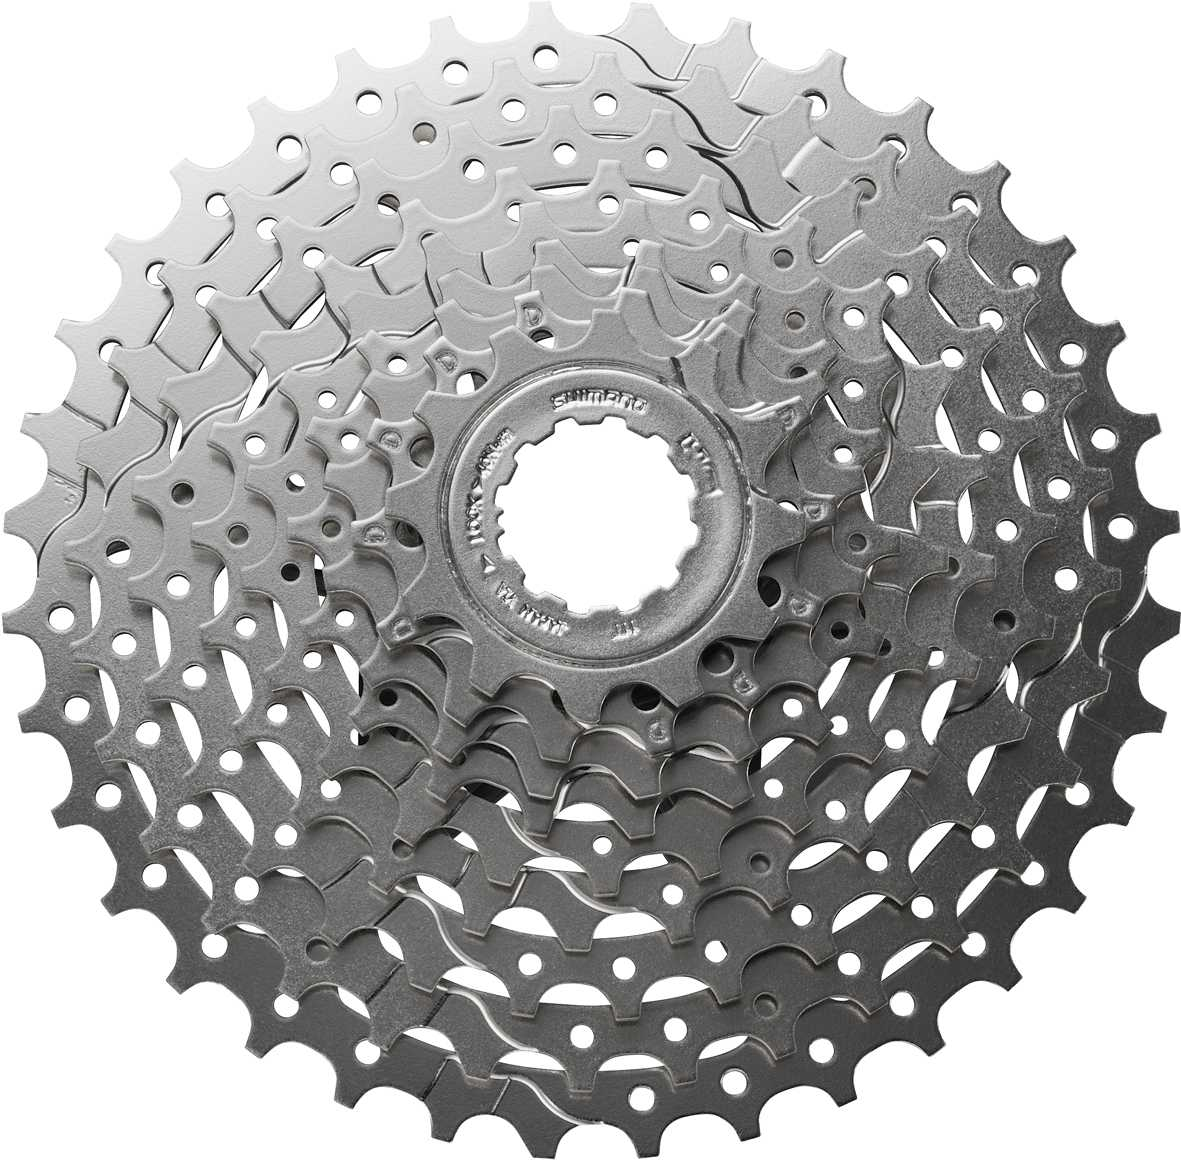 Shimano Alivio HG400  9 Speed 11-28 Tooth Cassette